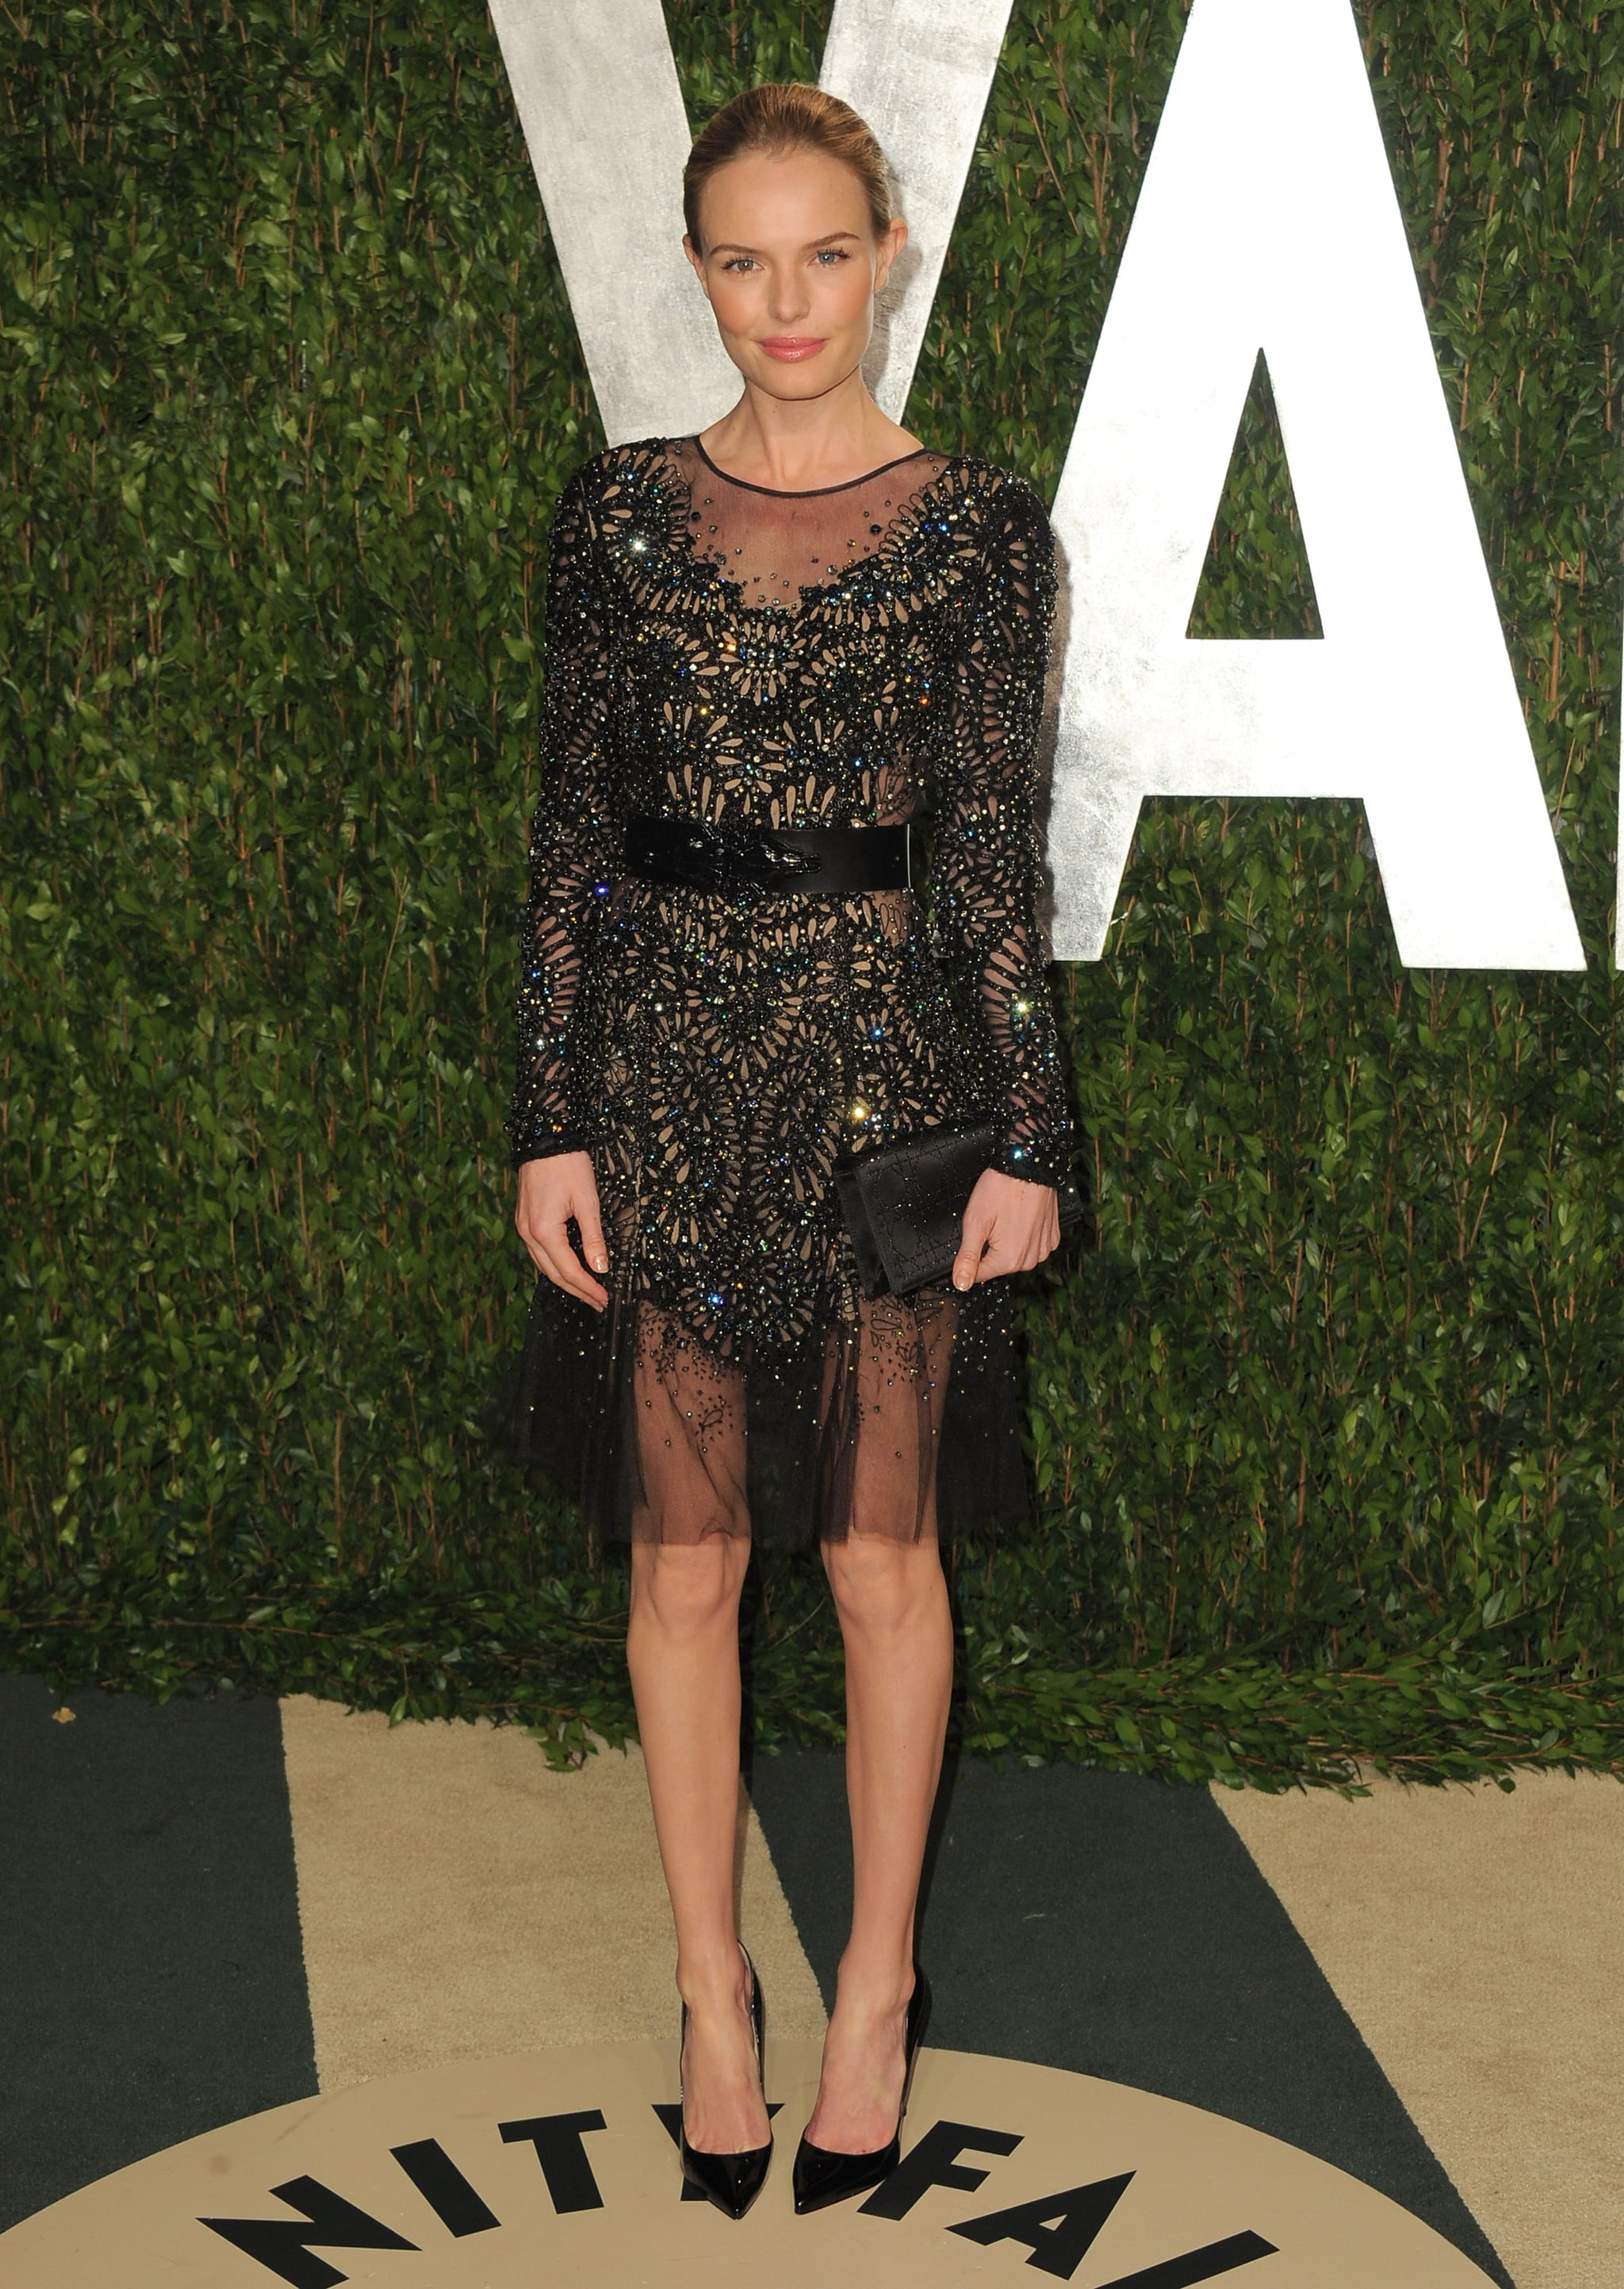 Kate Bosworth at the Vanity Fair party.